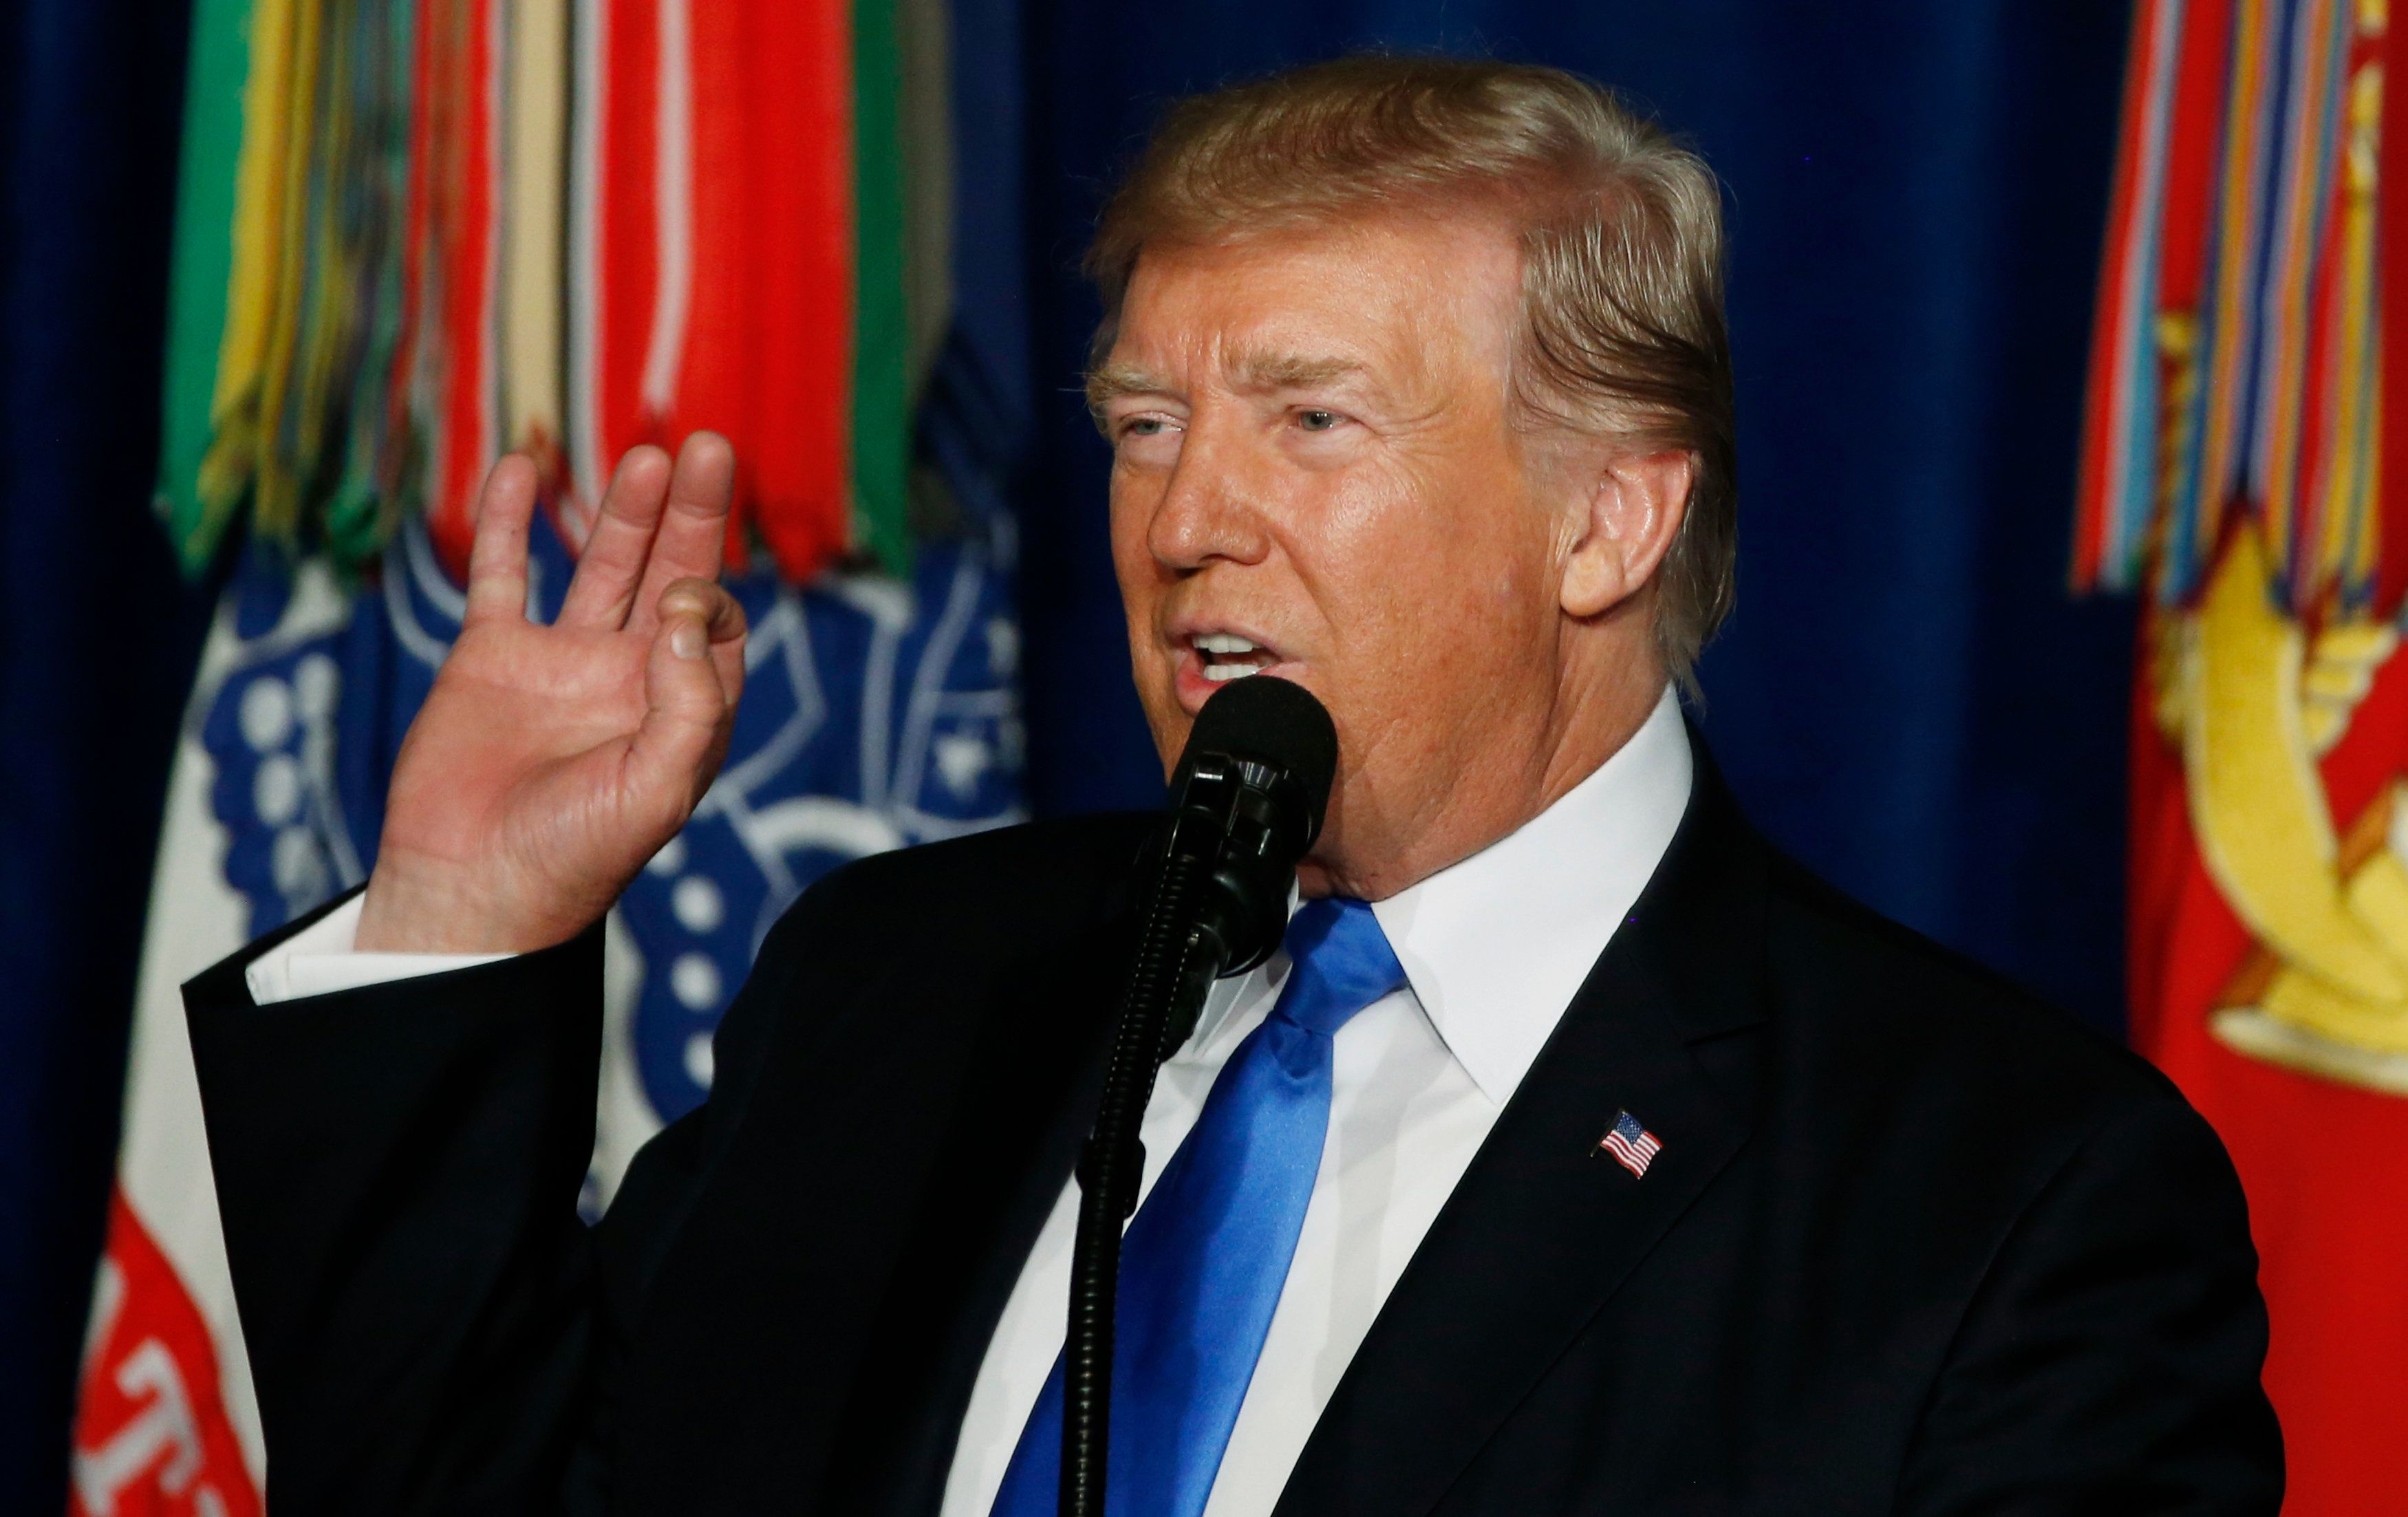 U.S. President Donald Trump announces his strategy for the war in Afghanistan during an address to the nation from Fort Myer, Virginia, U.S., August 21, 2017. REUTERS/Joshua Roberts